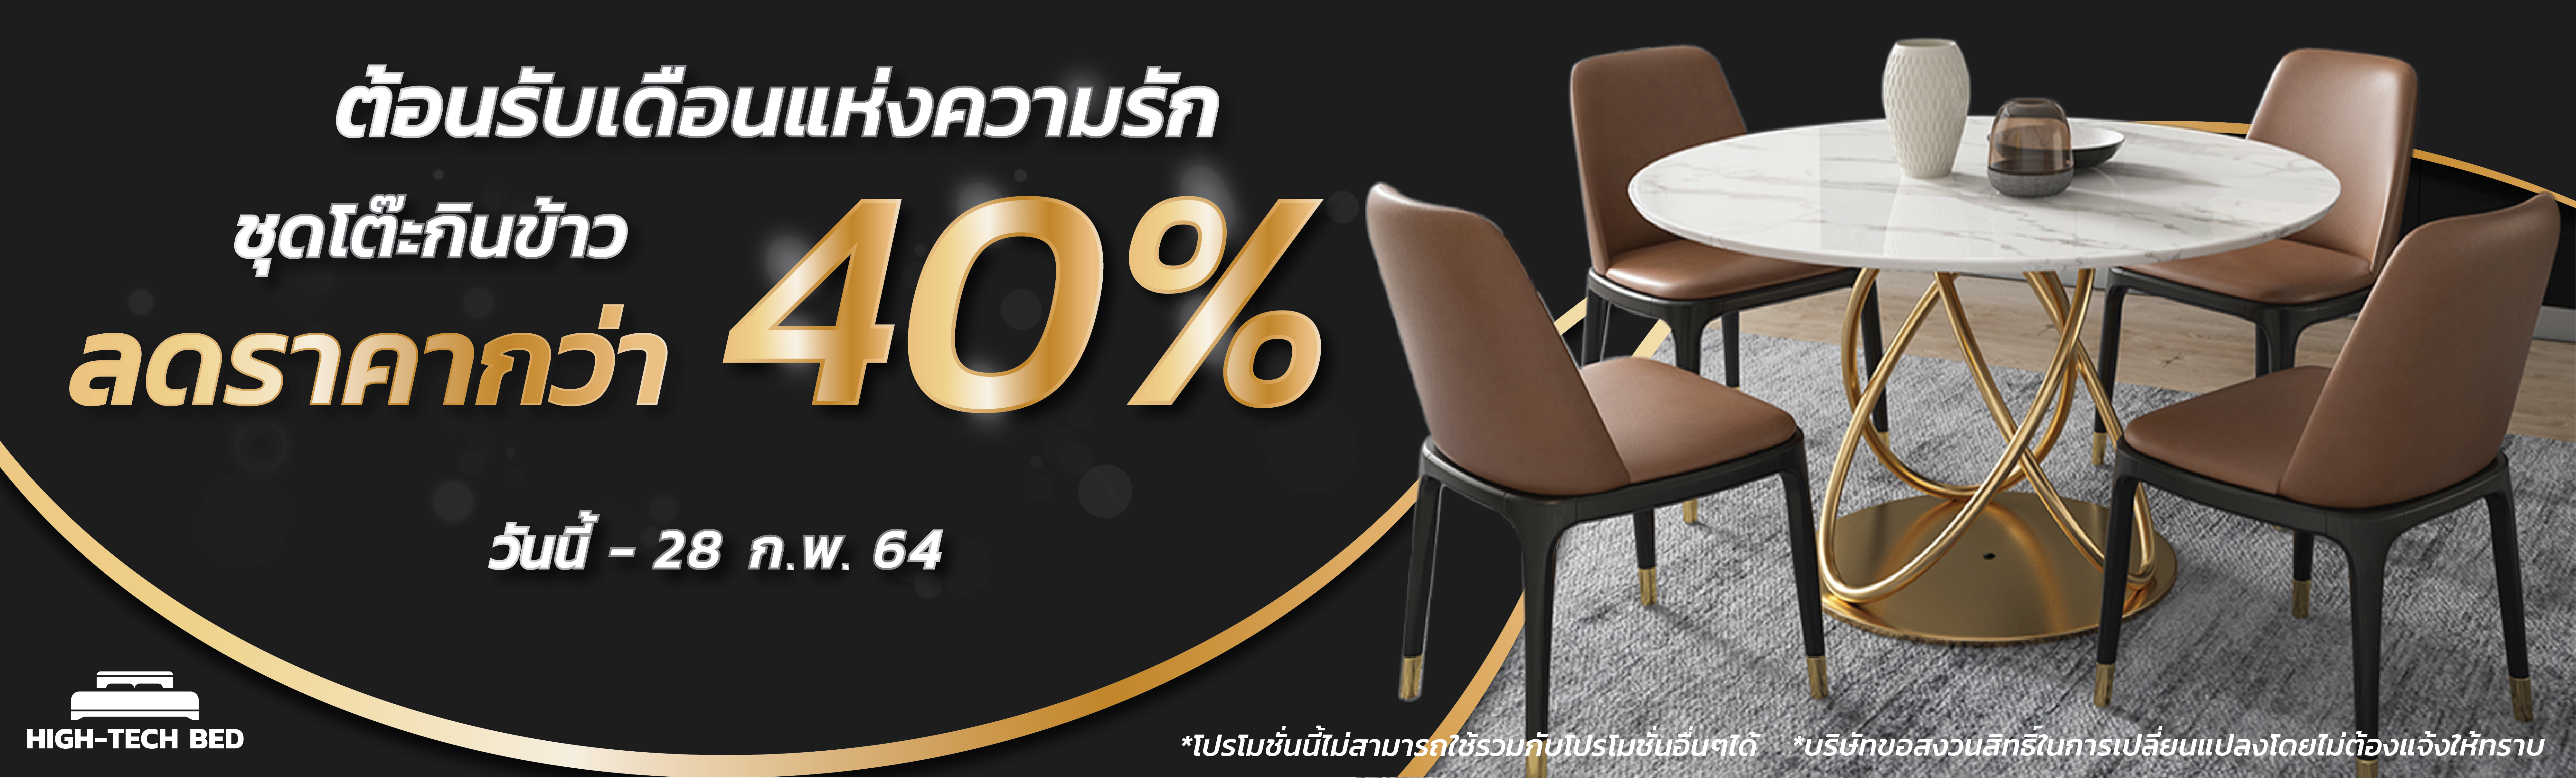 Promotion Hightechbed Furniture